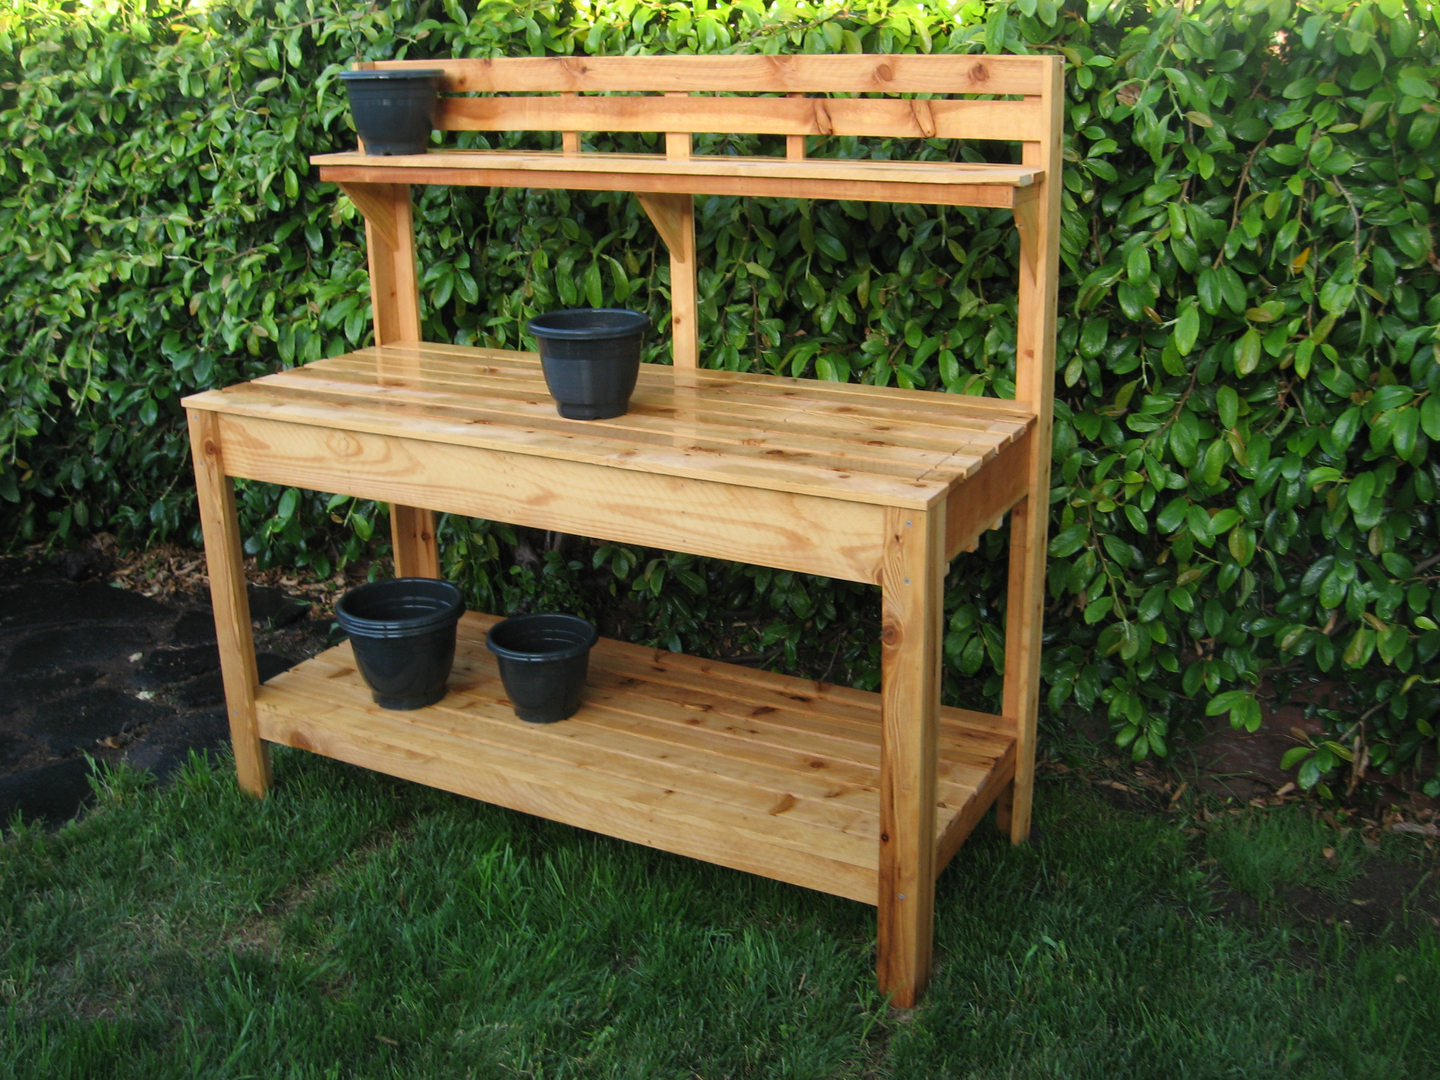 Raised Garden Beds - Custom Raised Gardens on raised desk designs, raised garden box designs, raised garden lighting, raised wood designs, raised garden planter designs, raised garden trellis designs, raised garden accessories, raised garden bed designs, raised fireplace designs,